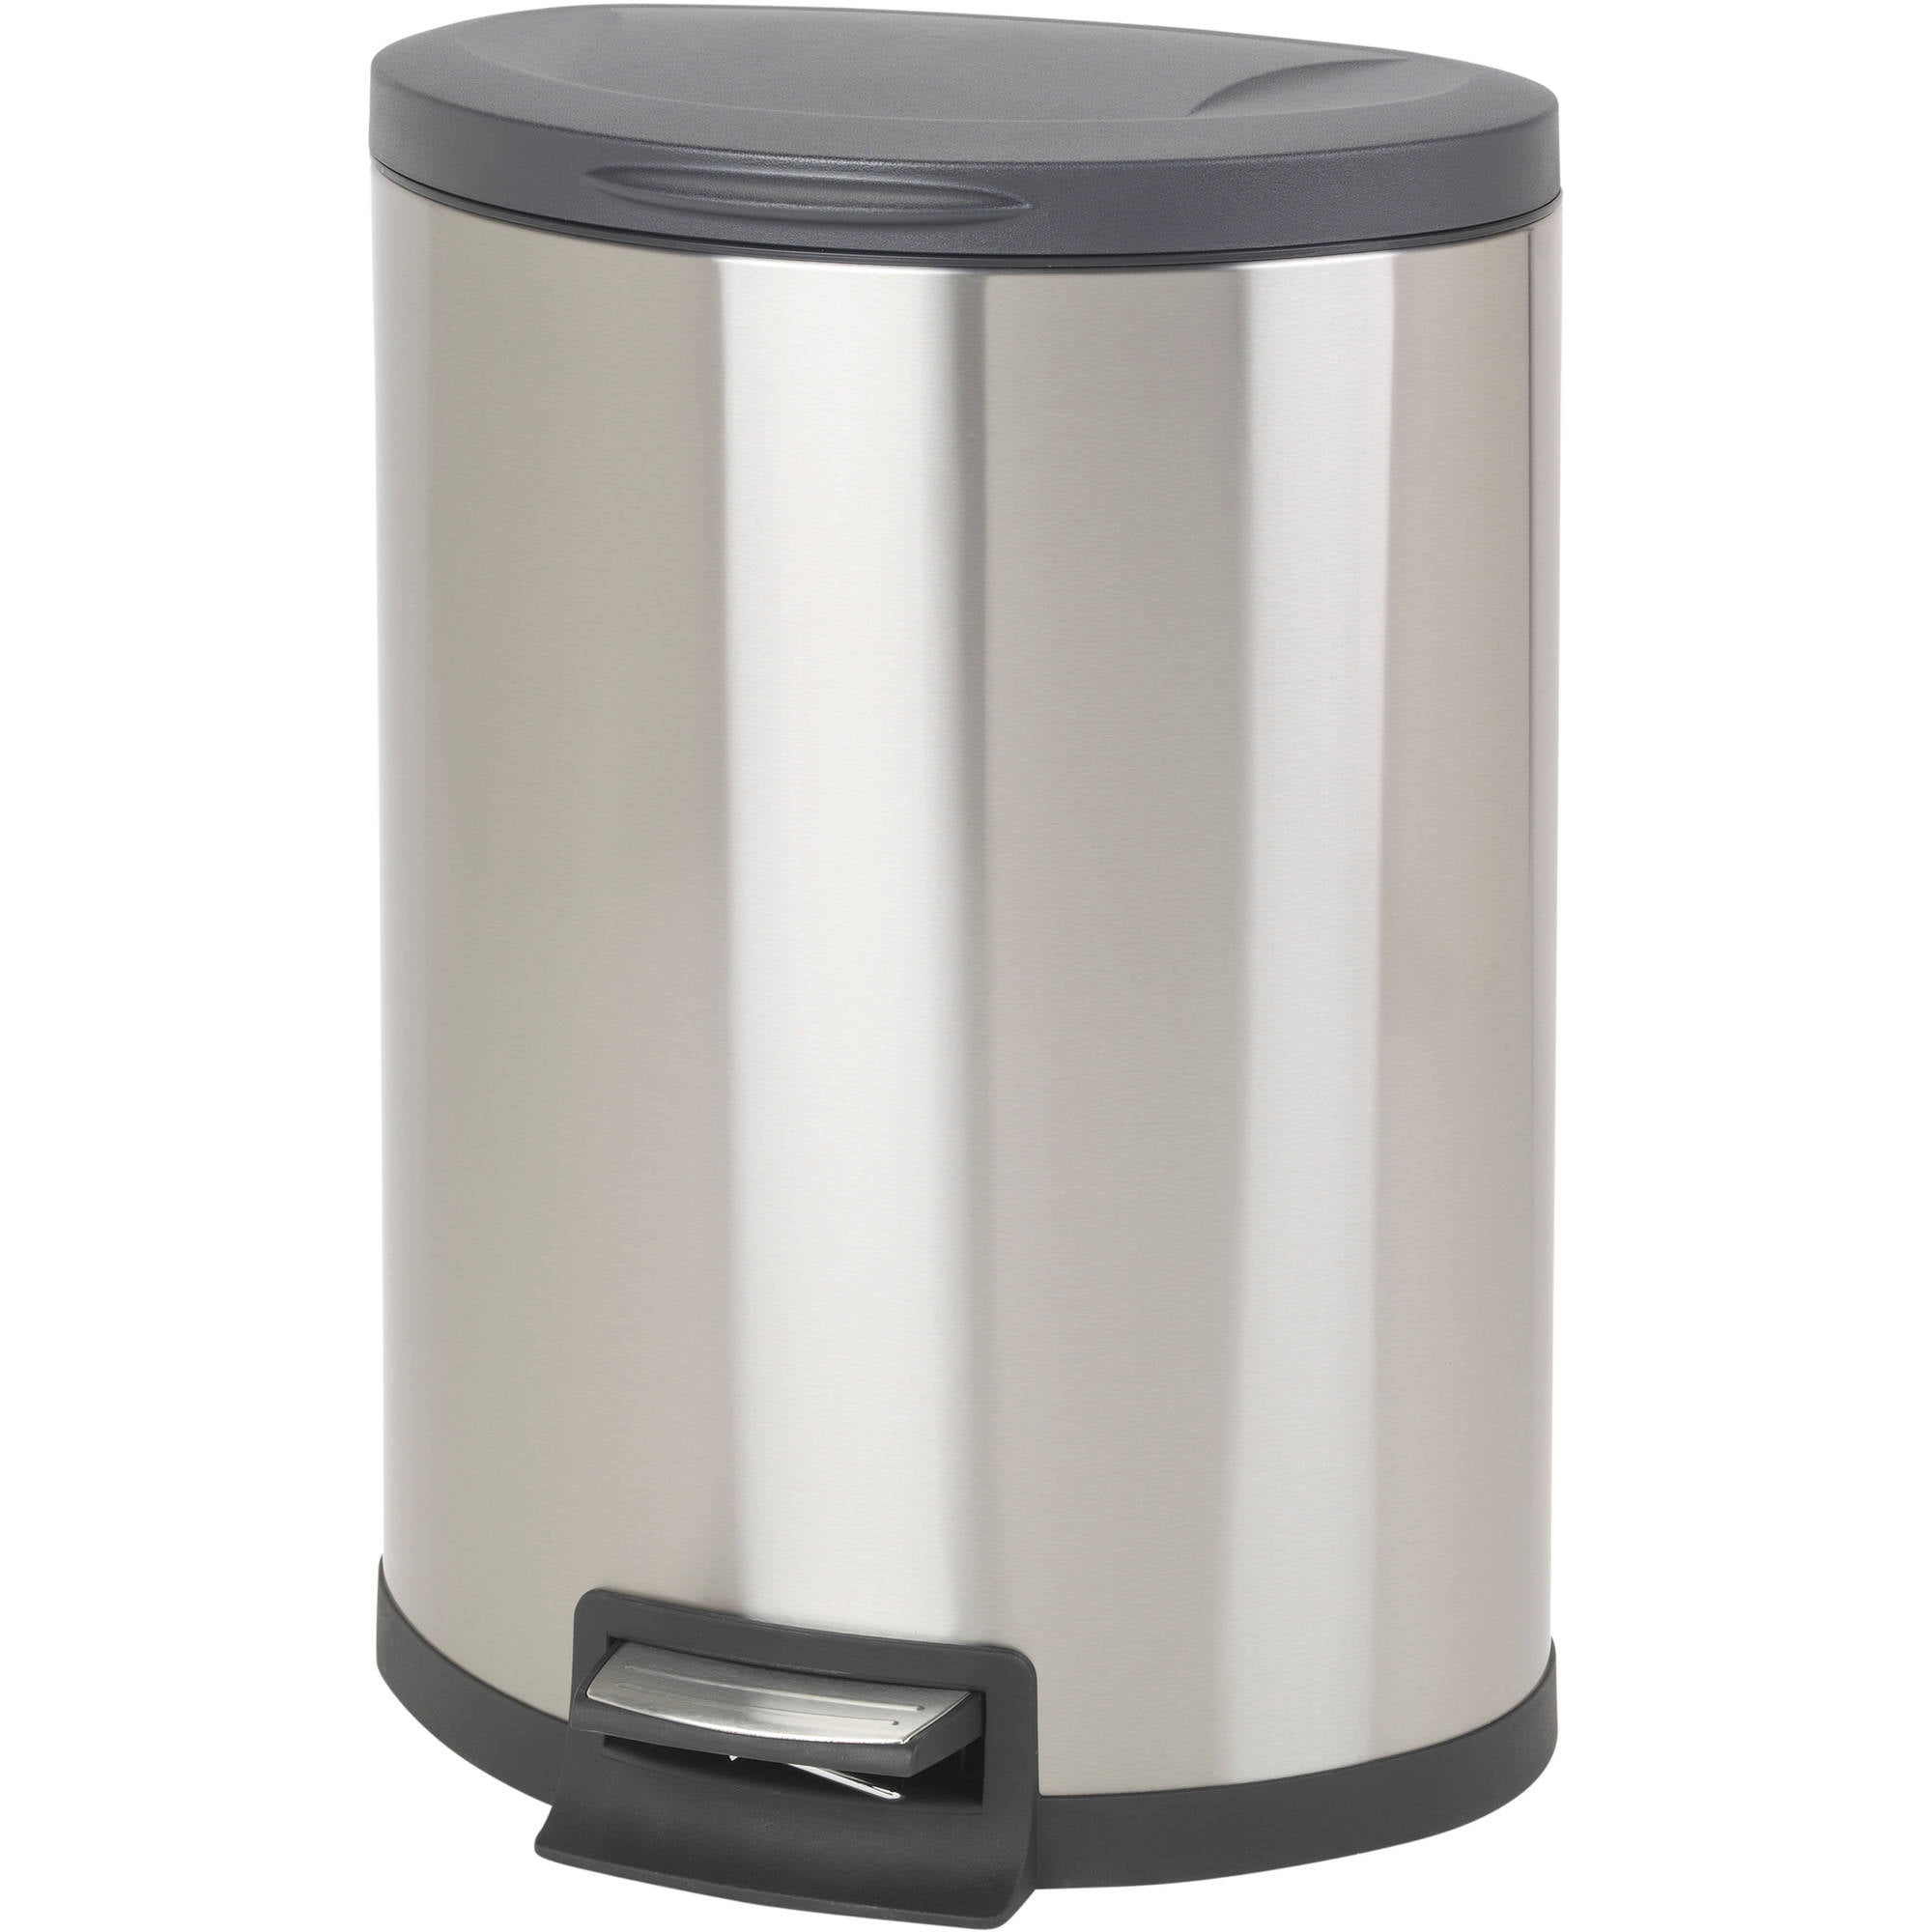 Merveilleux Better Homes U0026 Garden 11.8 Gallon Semi Round Stainless Steel Waste Can    Walmart.com